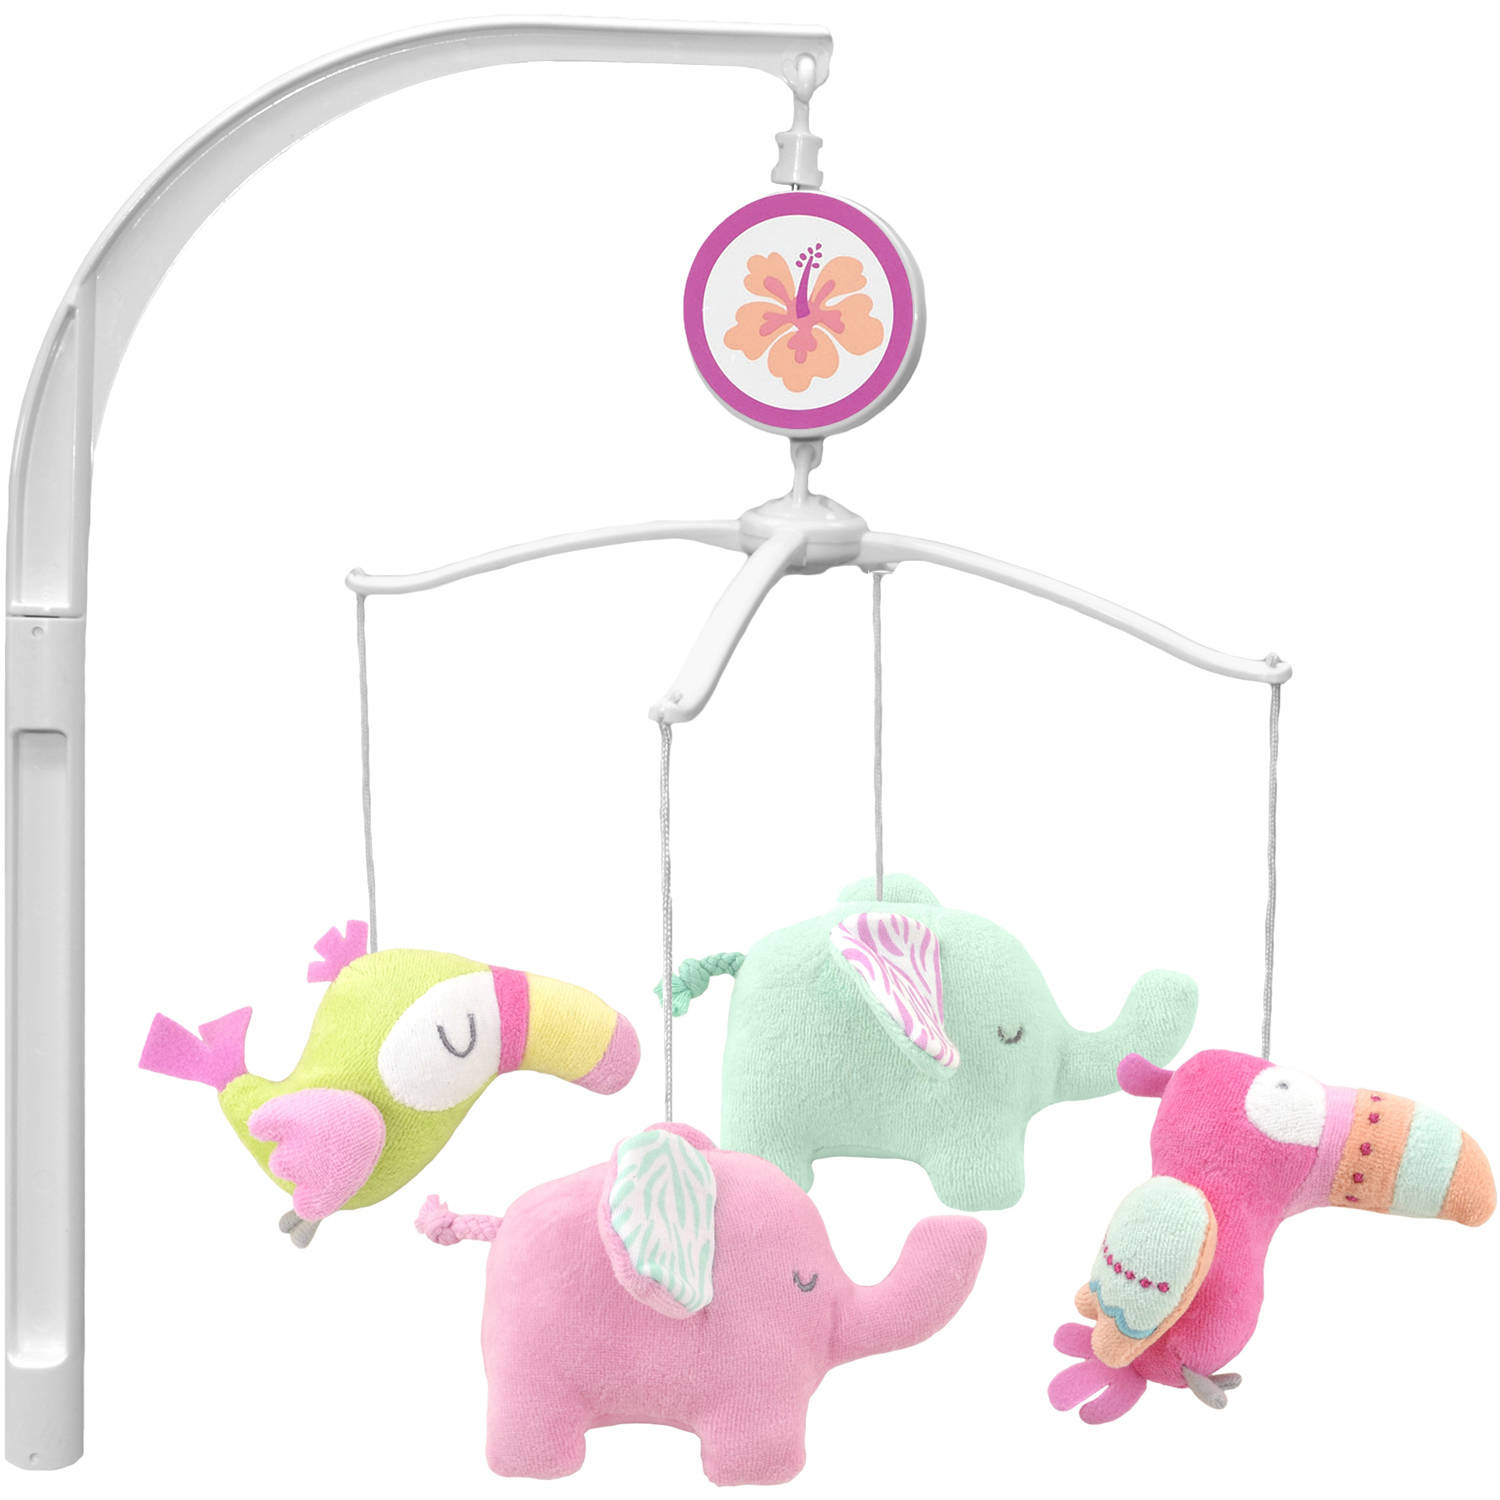 Garanimals Tropical Tales Musical Crib Mobile